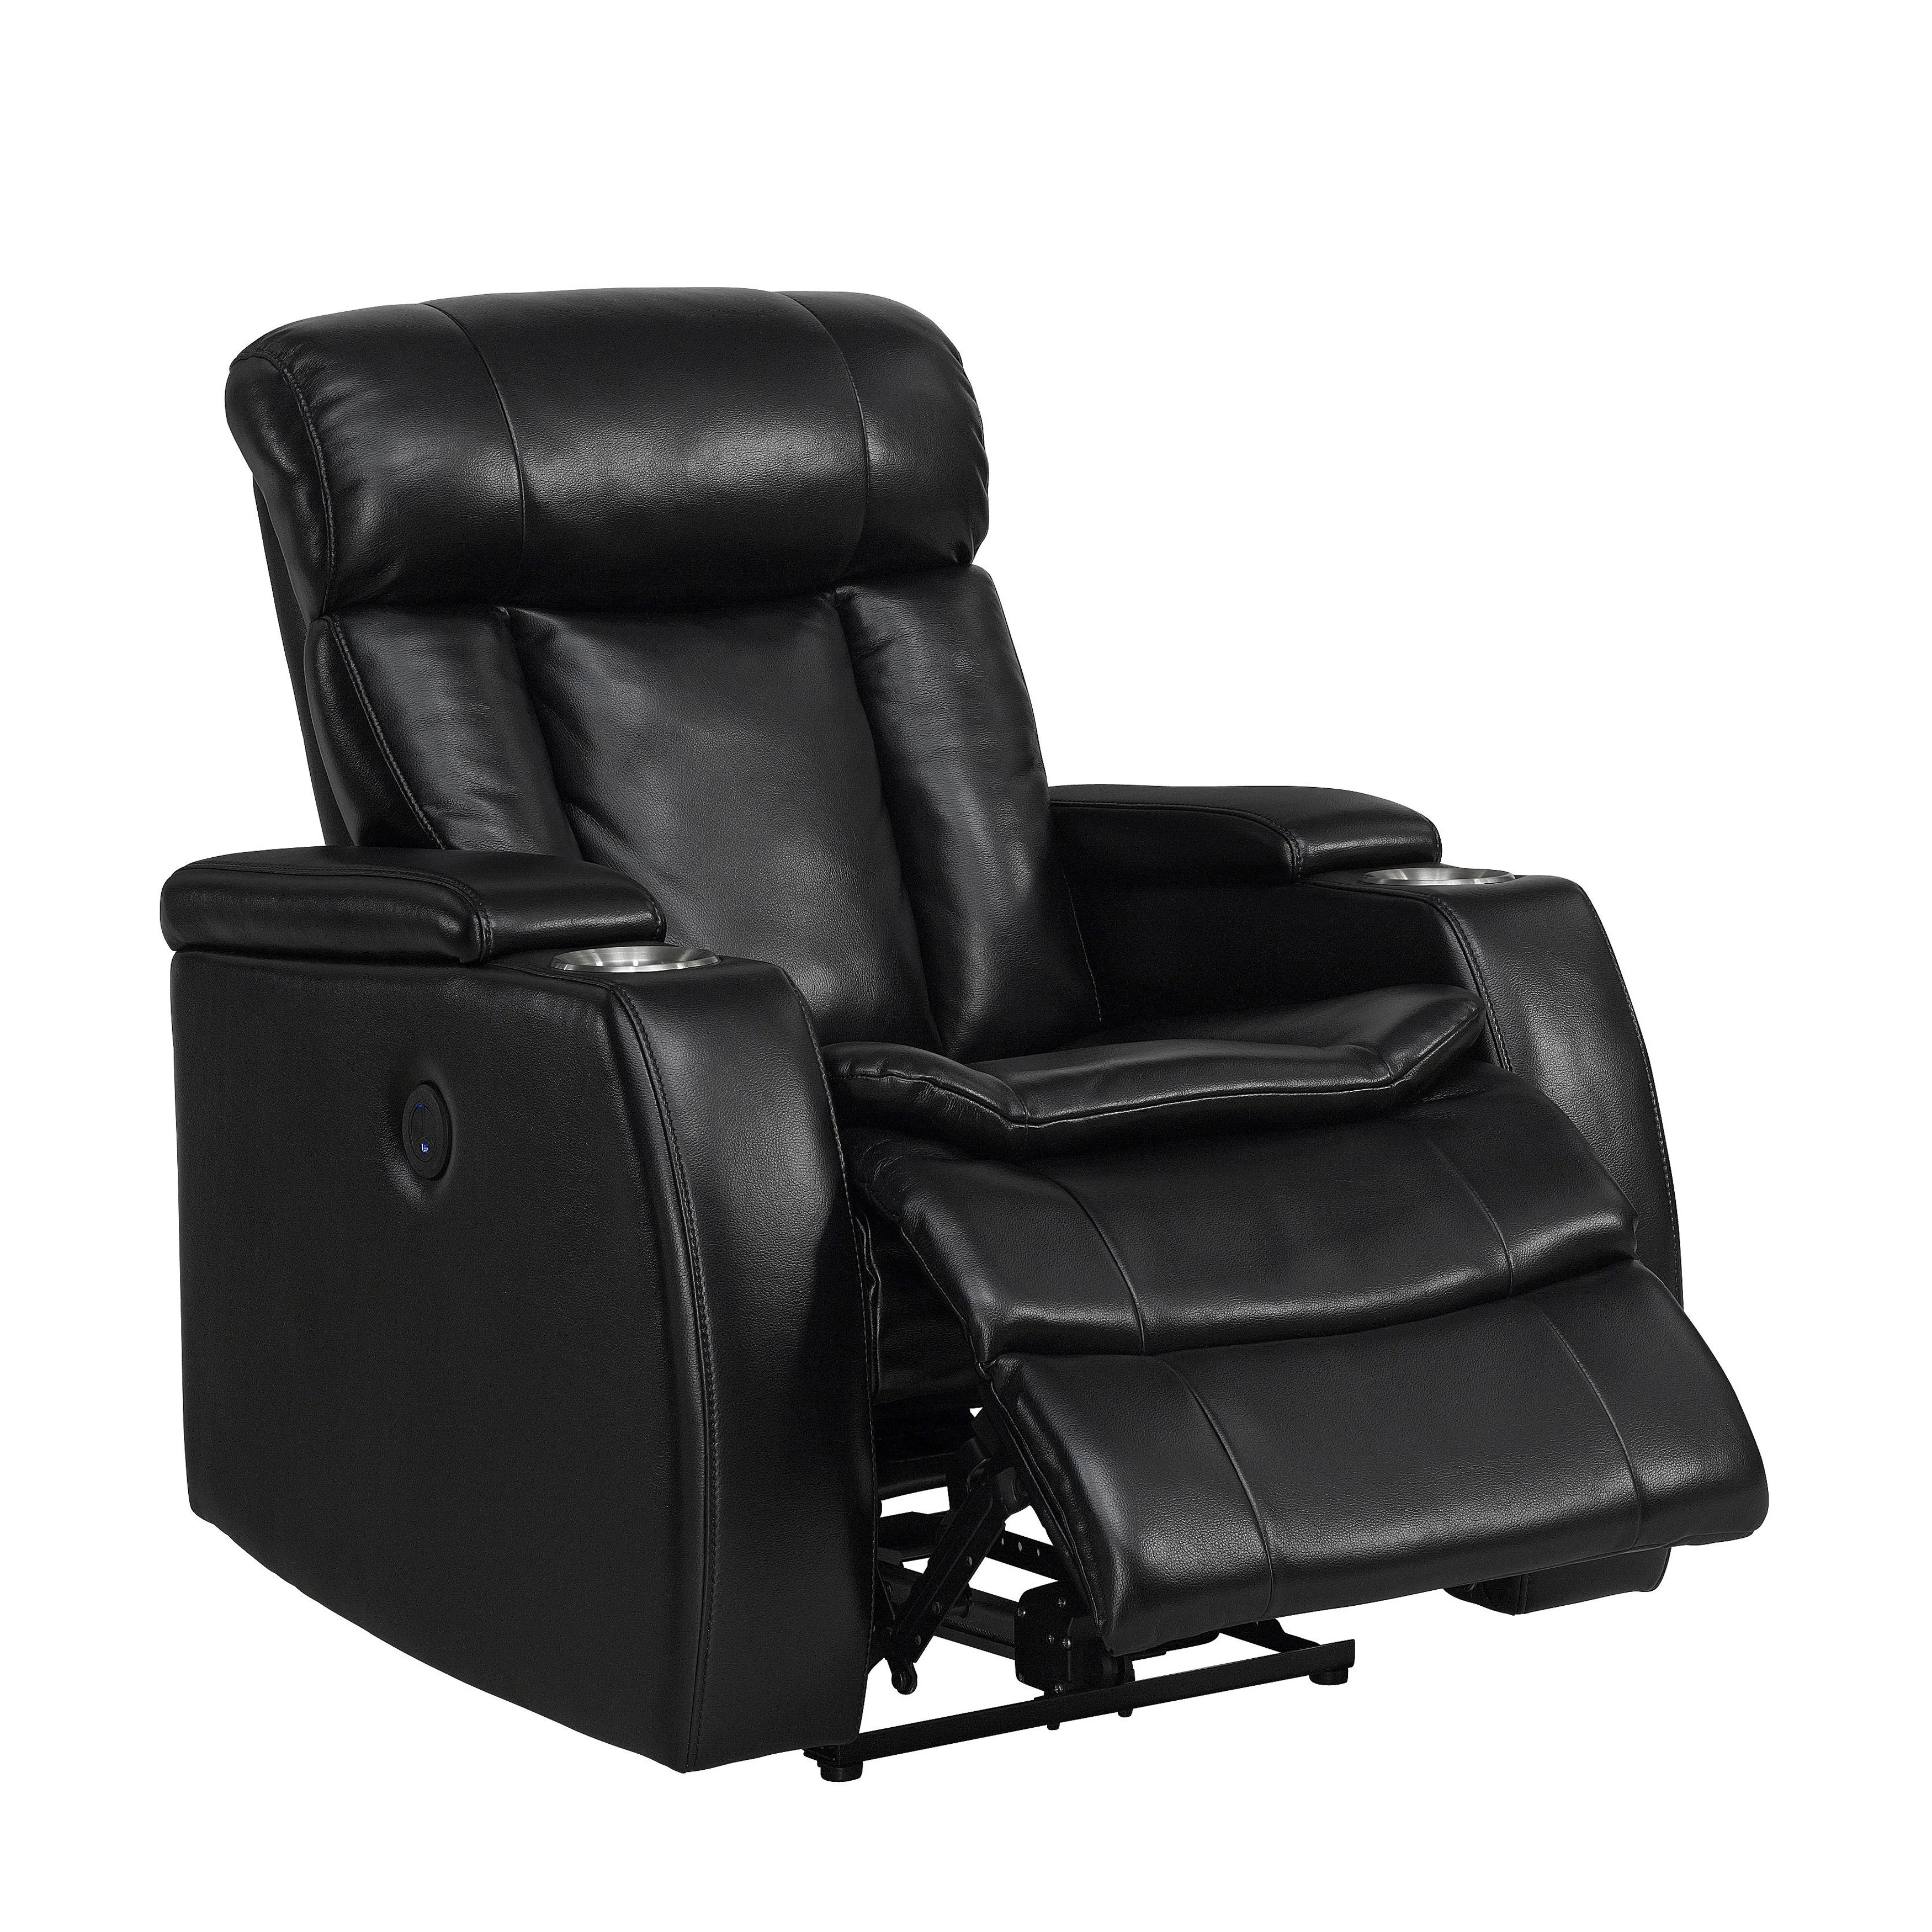 Sofa Relax Con Usb Smart Tech Bluetooth Power Reclining Black Sofa And Recliner Chair